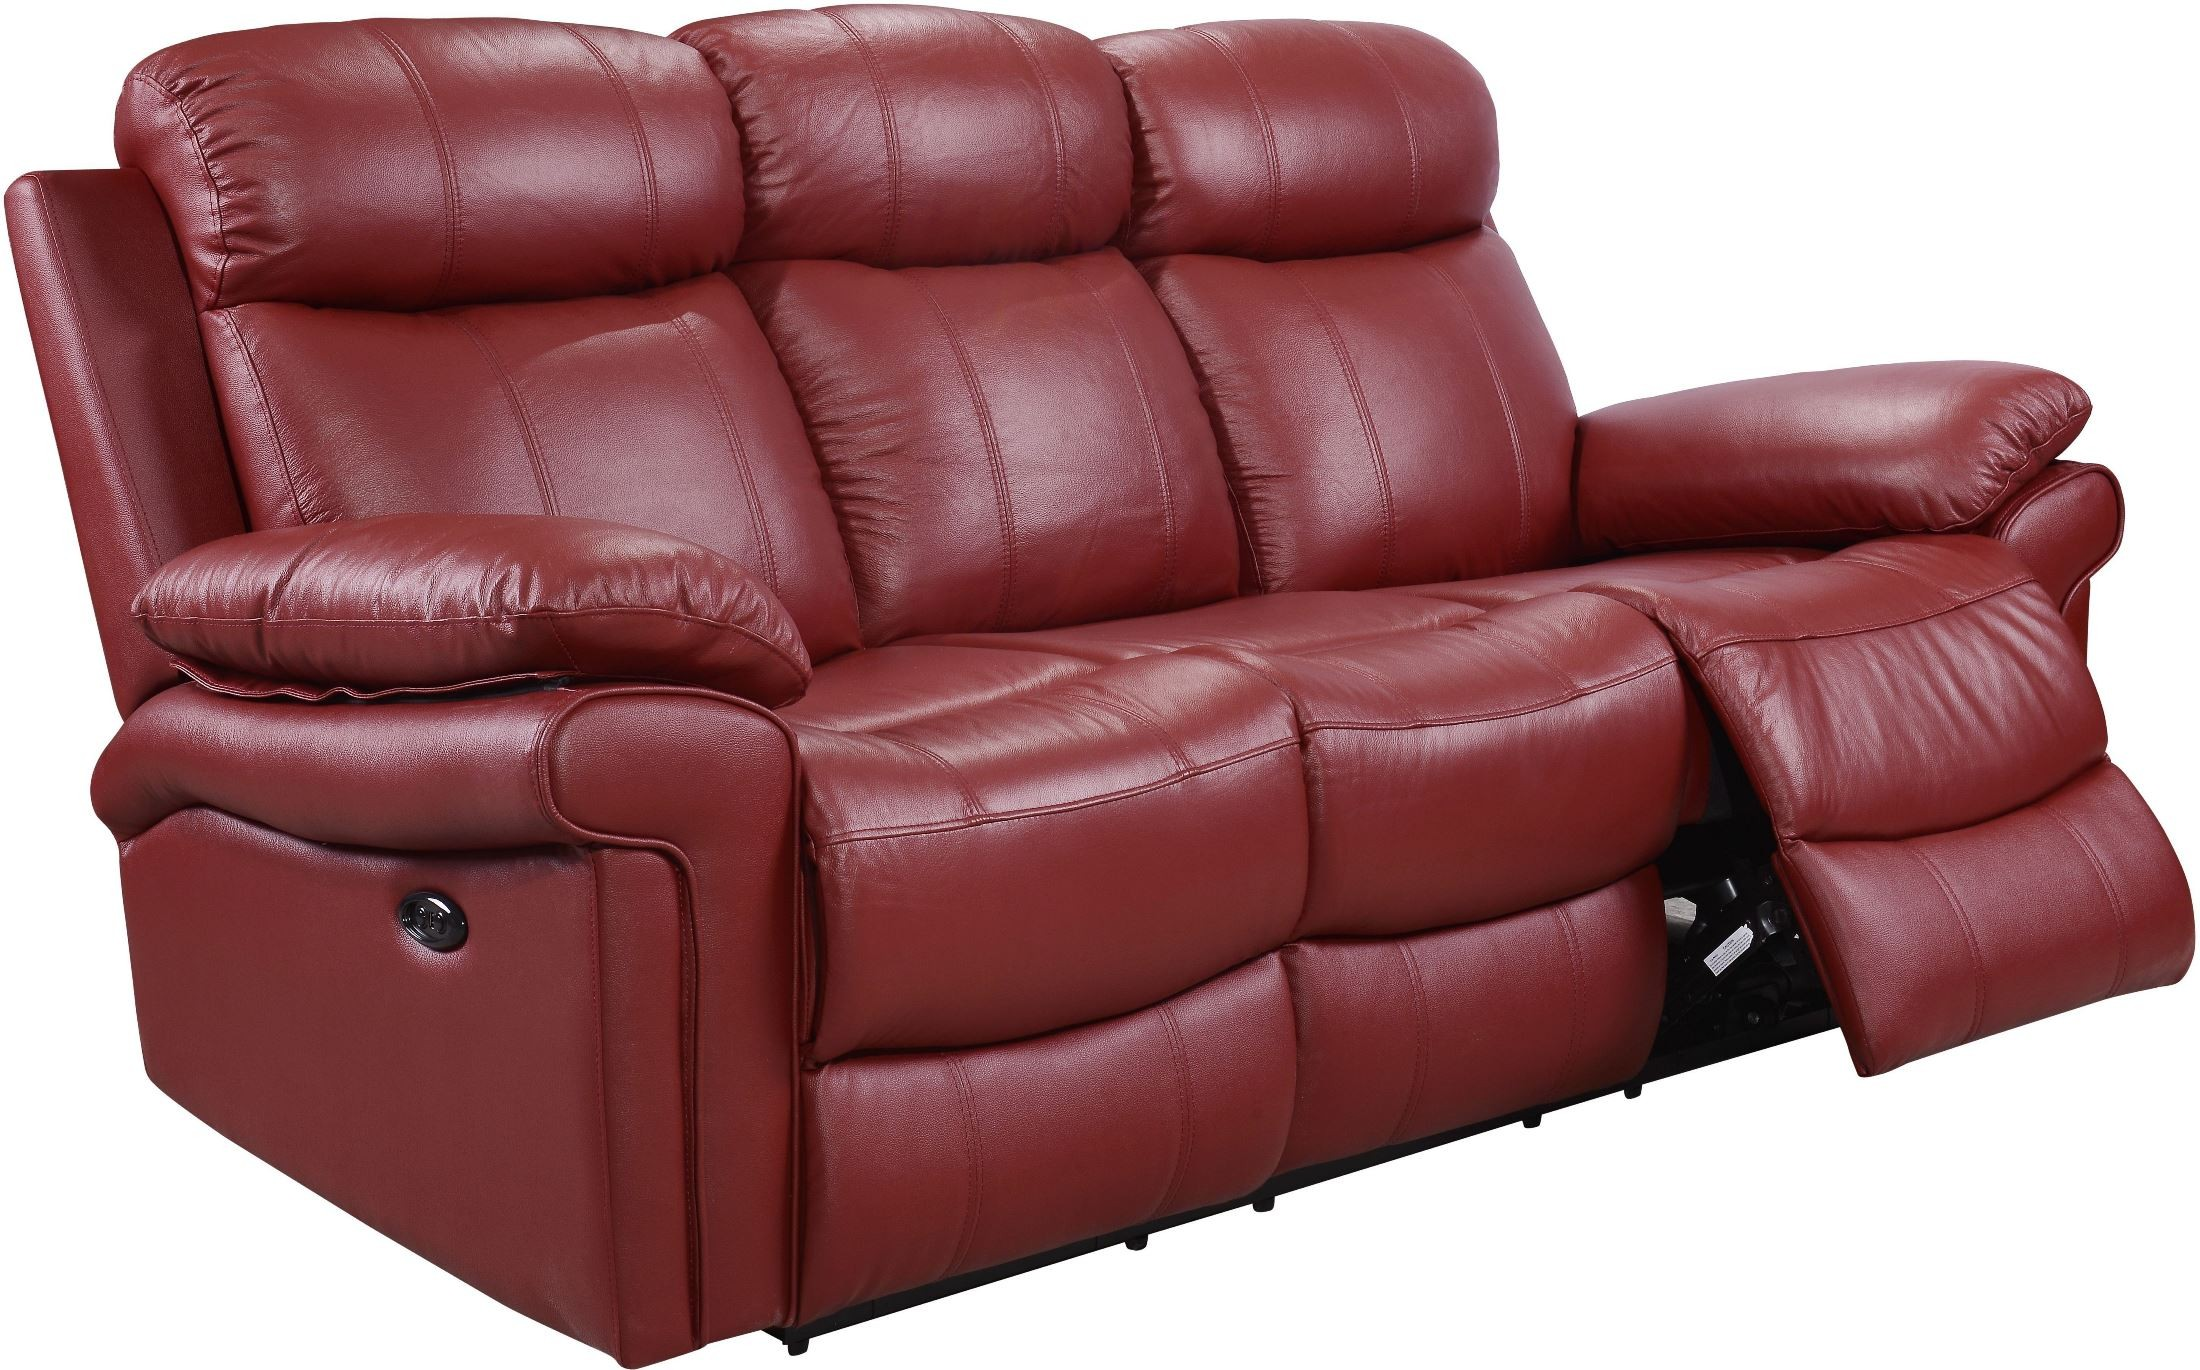 Shae Joplin Red Leather Power Reclining Sofa 1555 E2117 031031lv Leather Italia